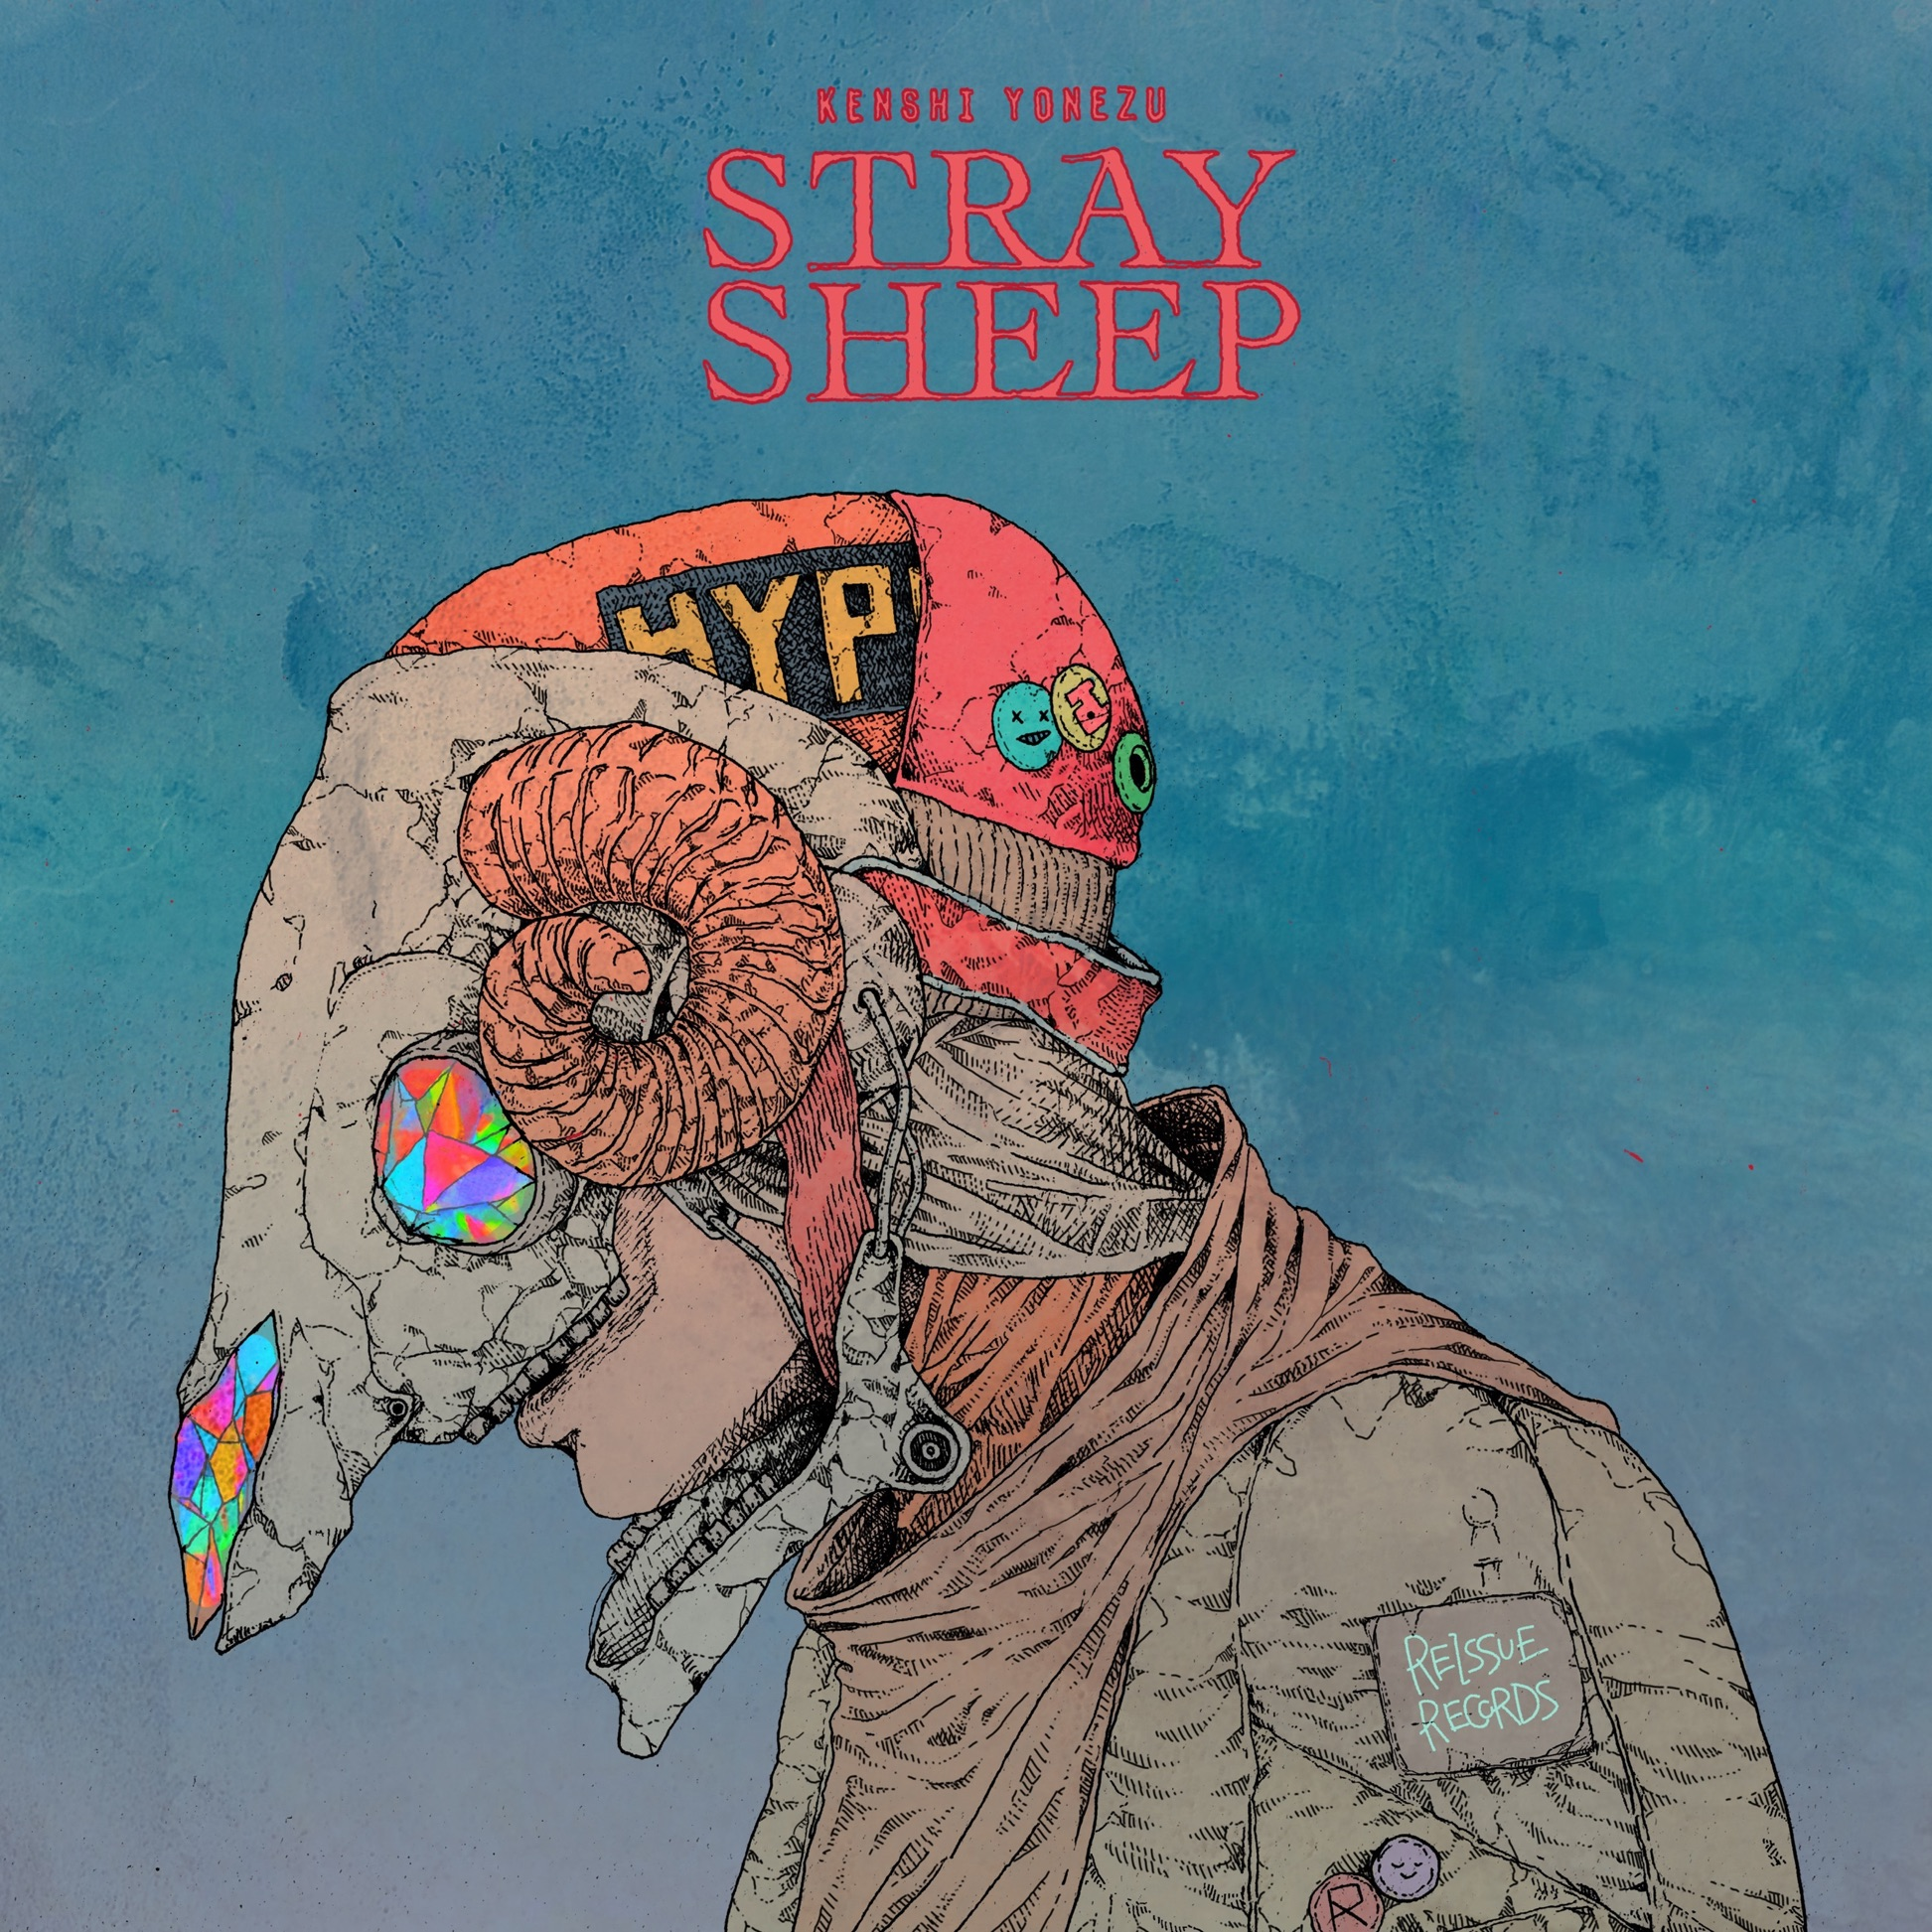 Stray Sheep - Kenshi Yonezu - Song - Apple Music India